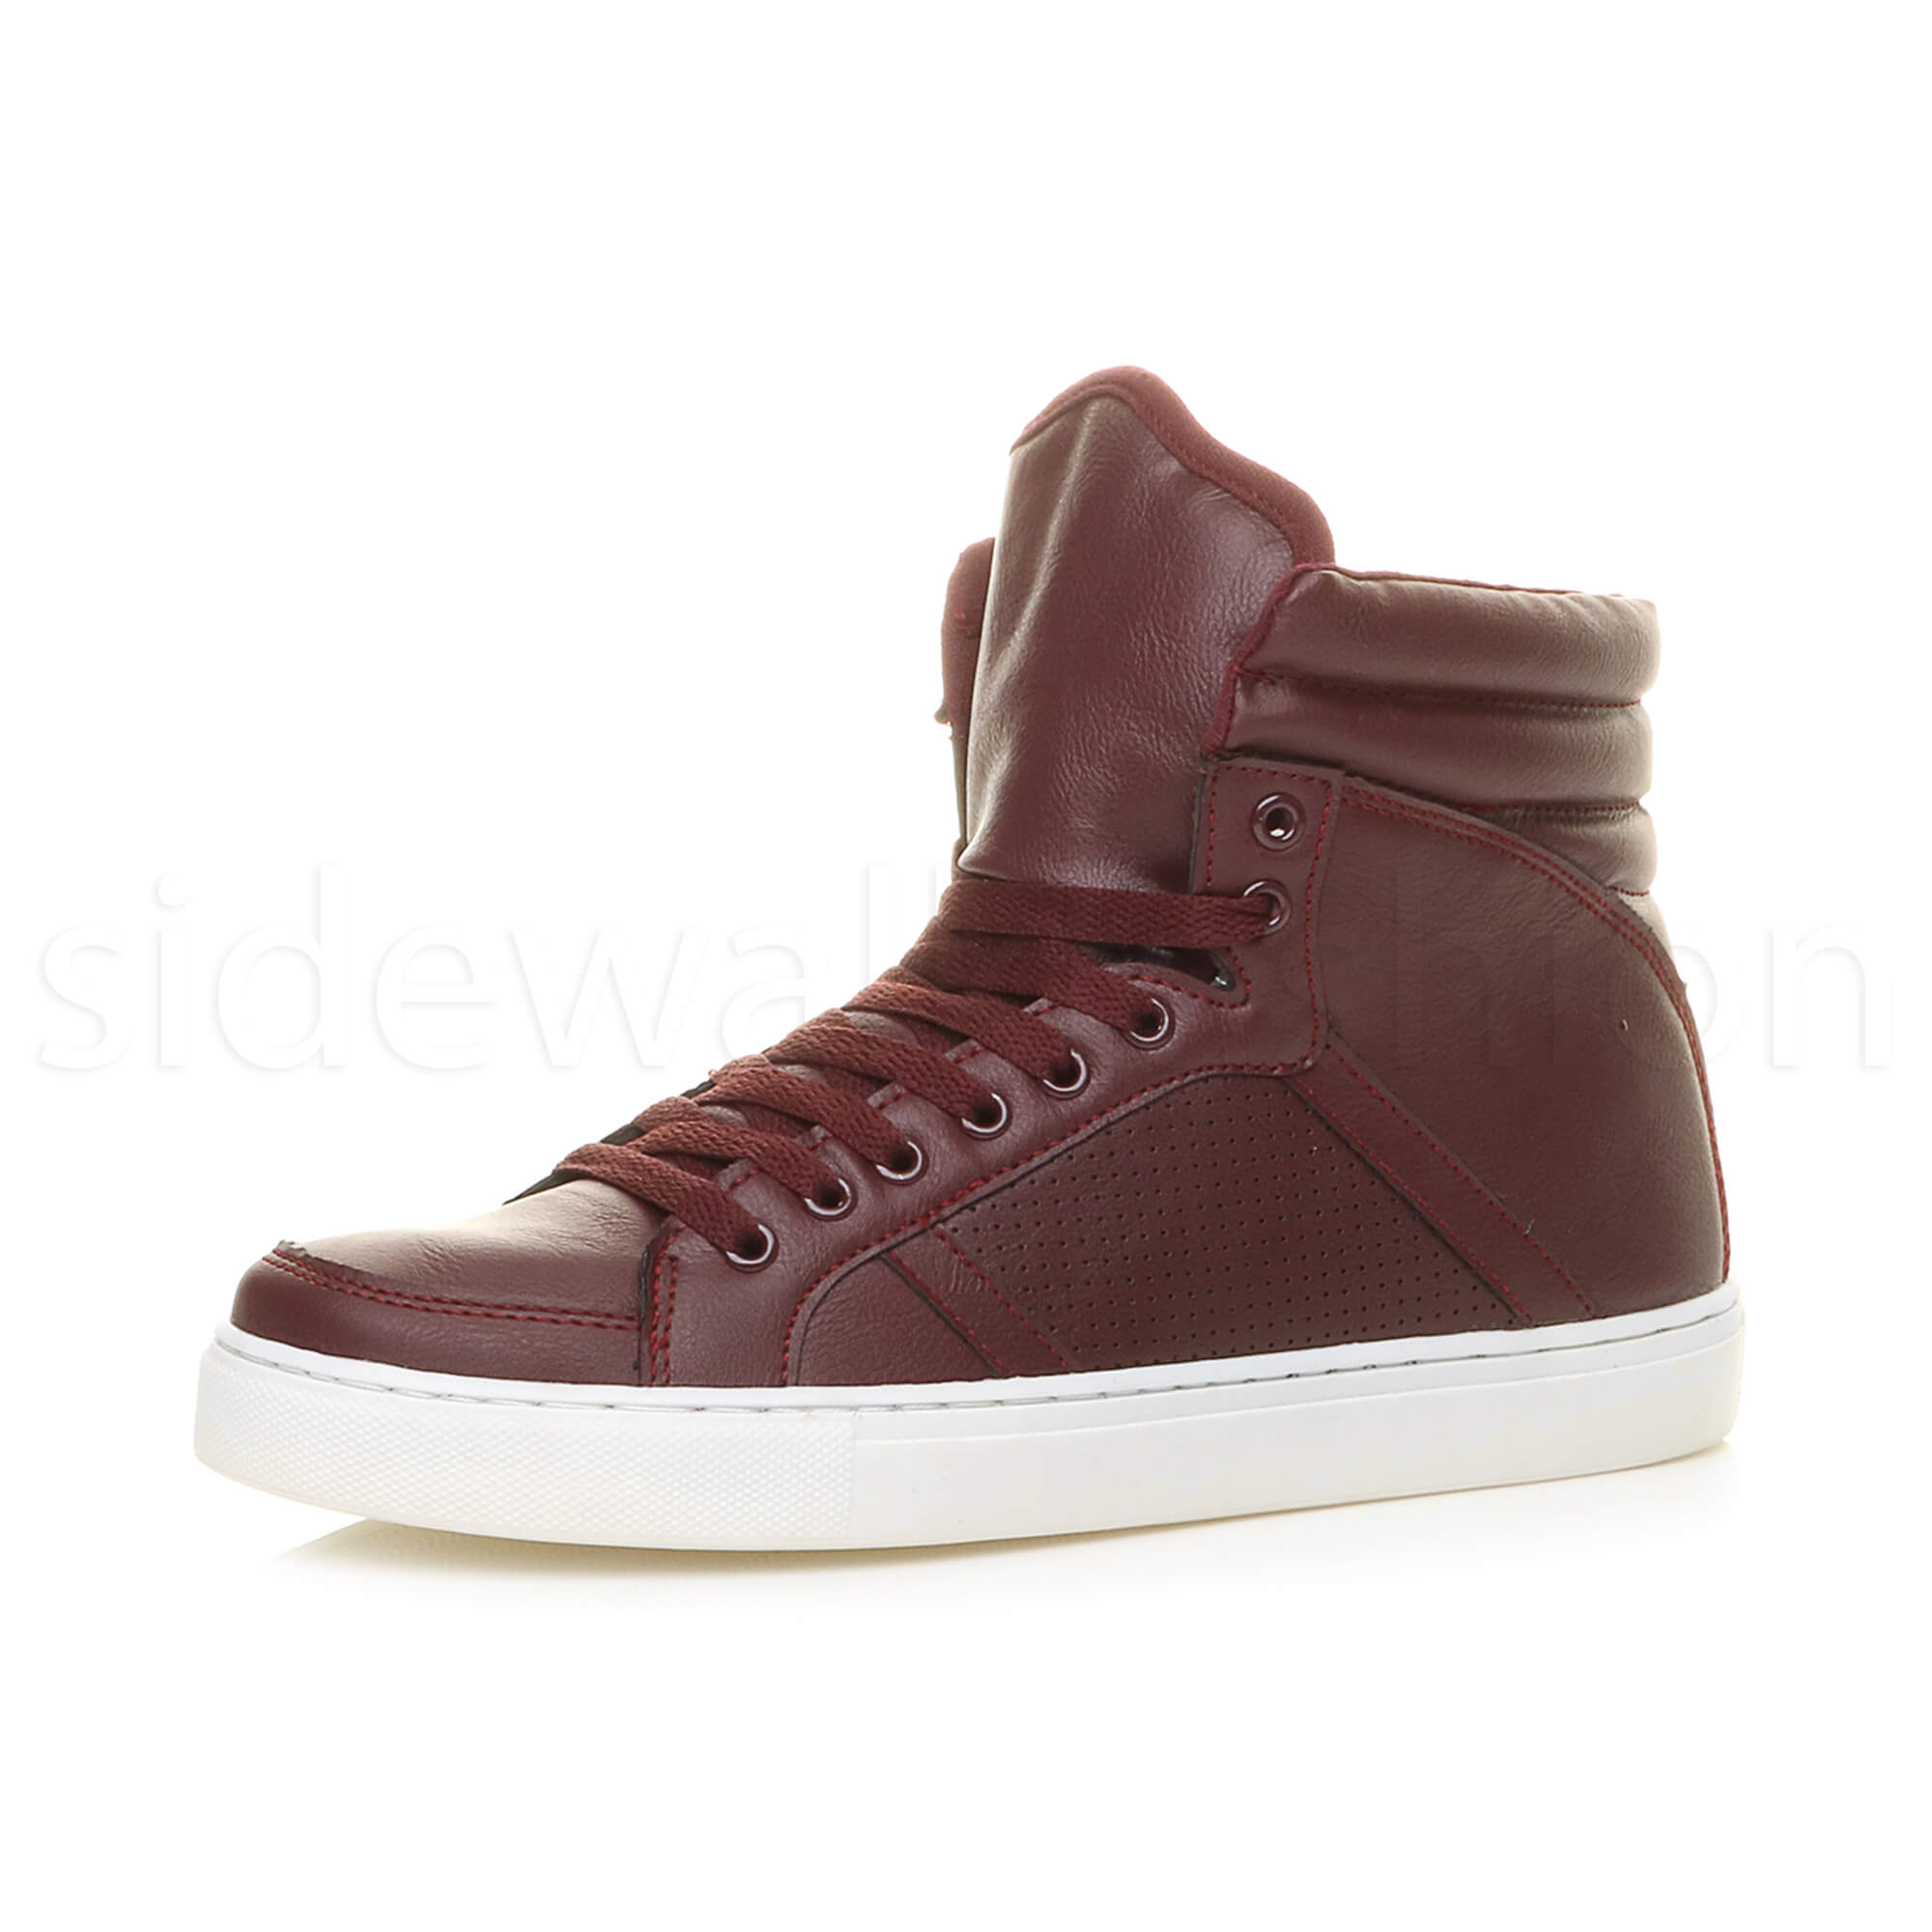 Mens boys hi high top flat casual lace up trainers ankle ...